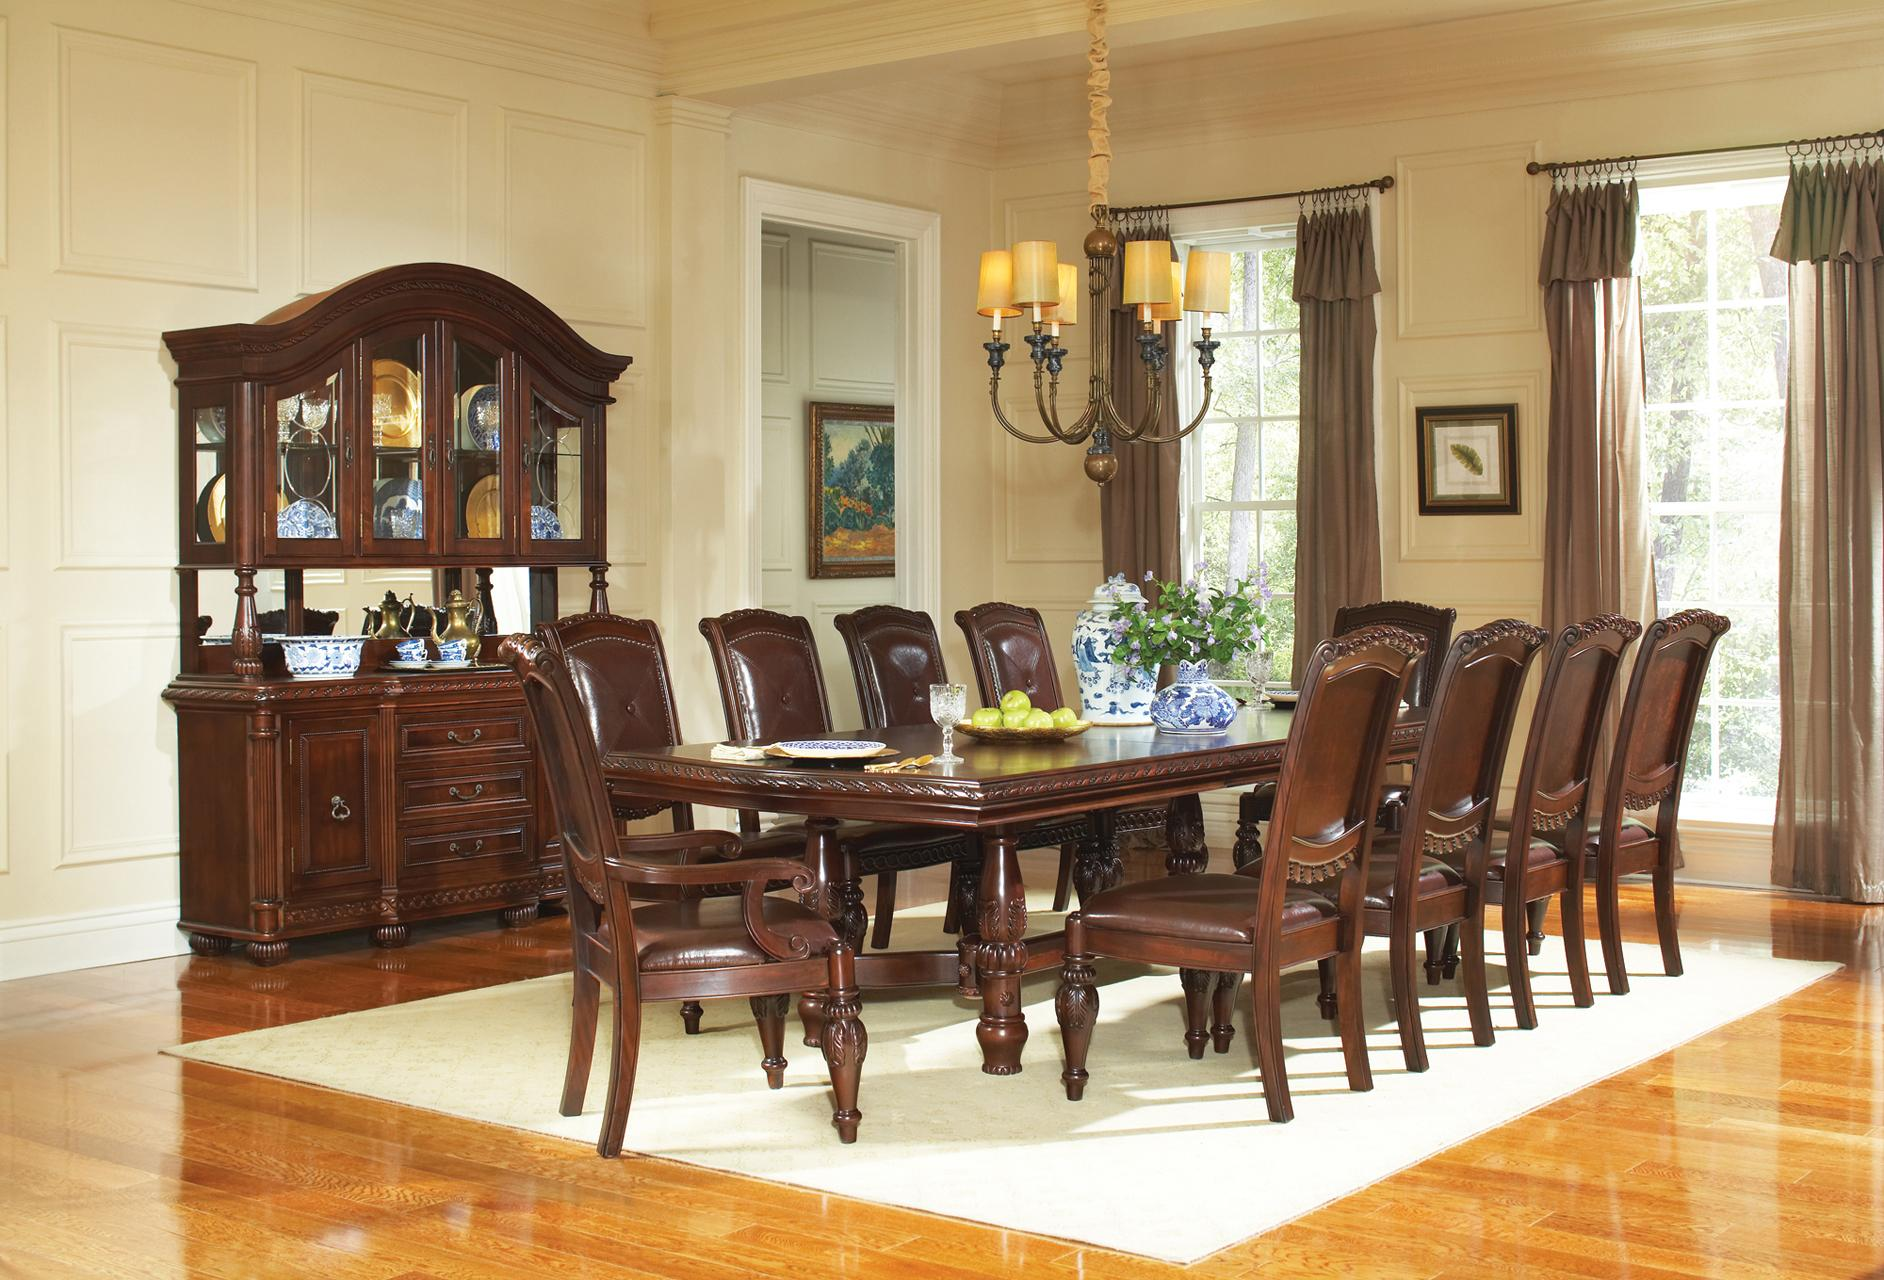 11-Piece Dining Table & Chair Set